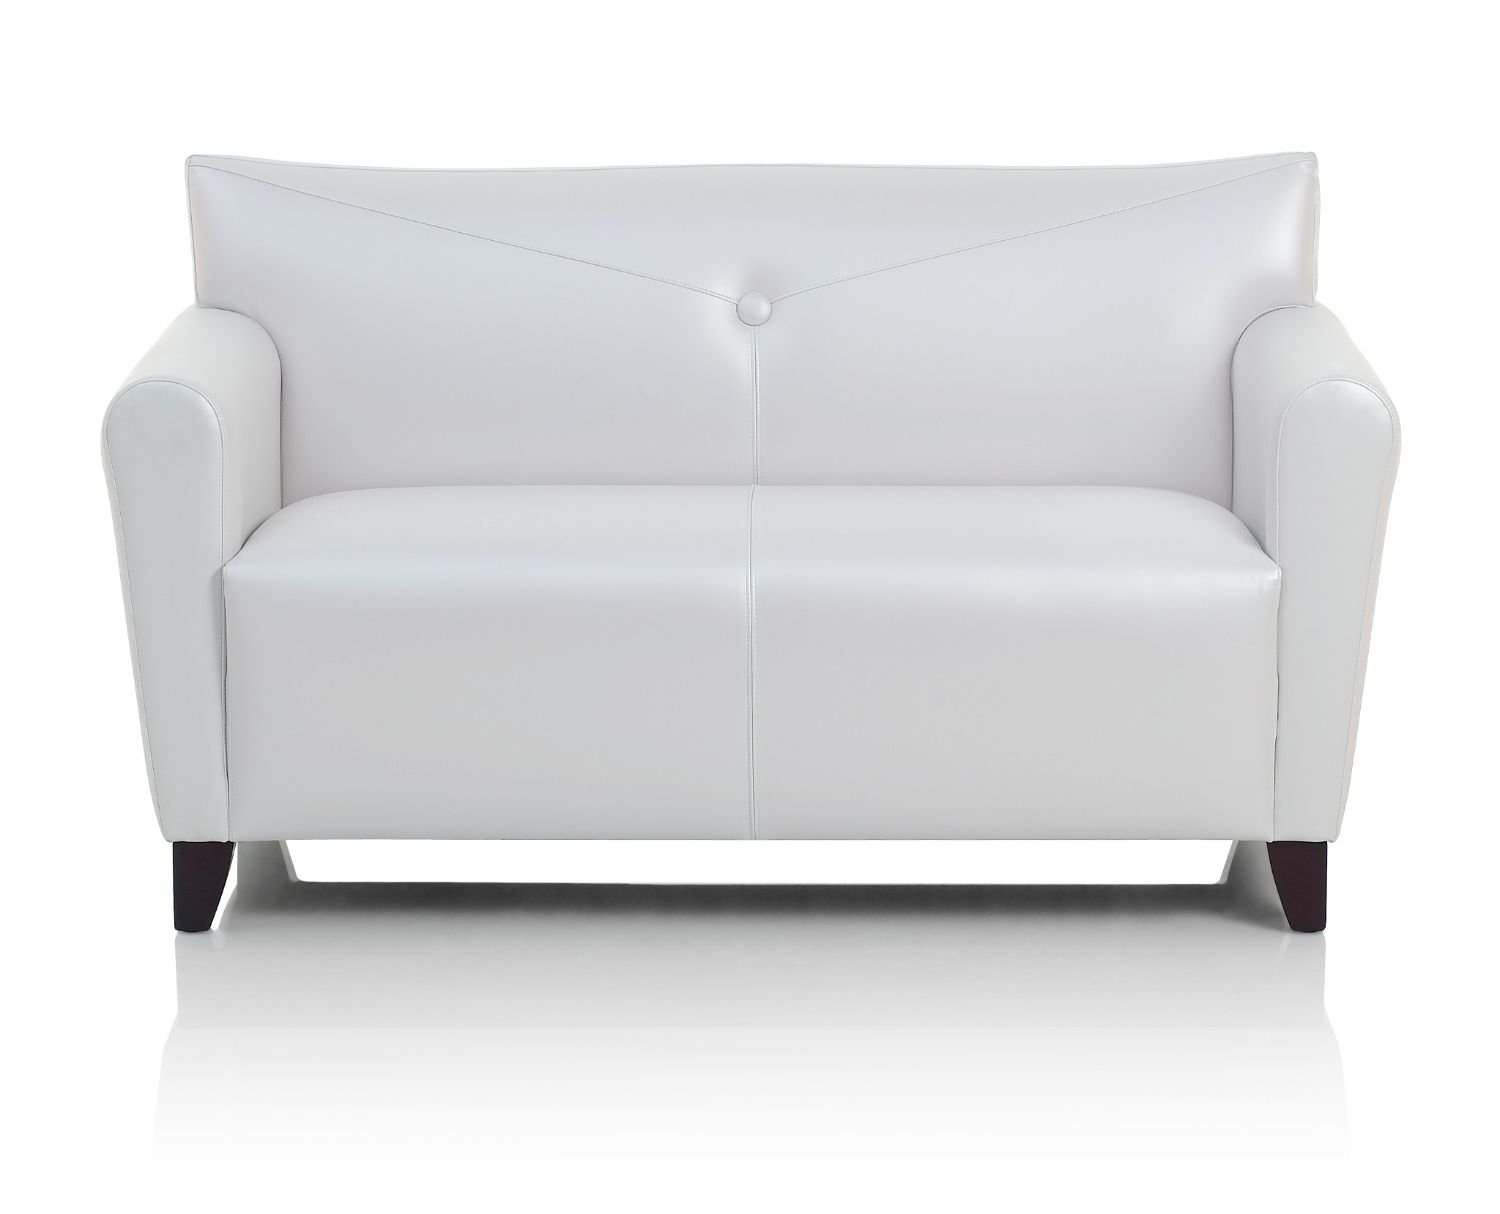 Ki Furniture Mesa™ Loveseat | Wayfair For Mesa Foam Oversized Sofa Chairs (View 9 of 25)